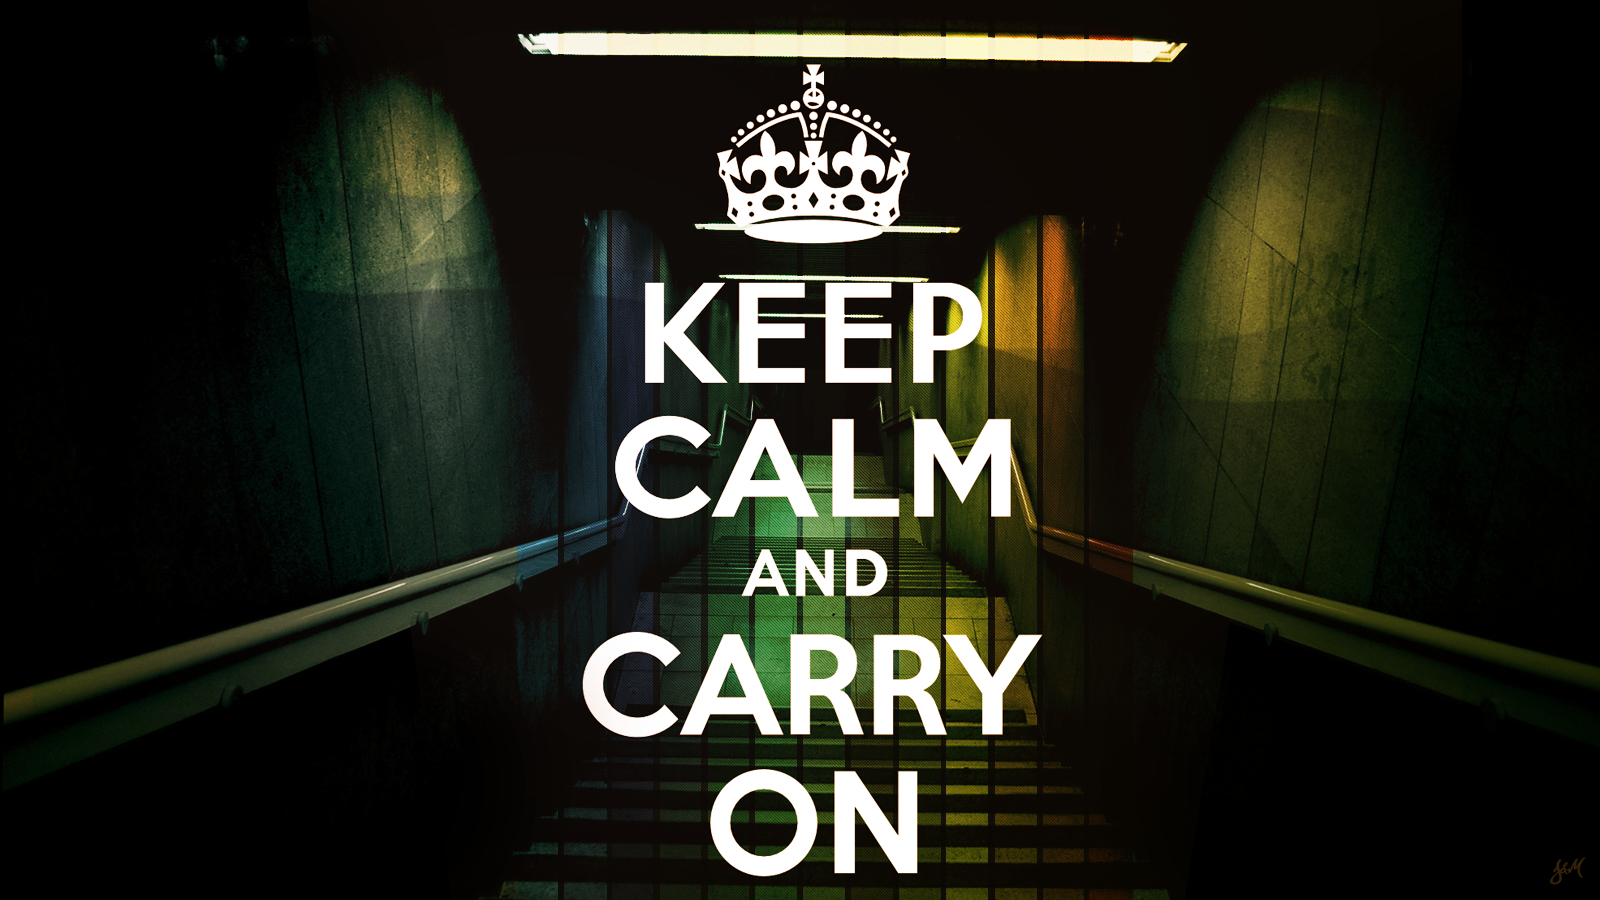 ... Keep Calm and Carry On by J9qw